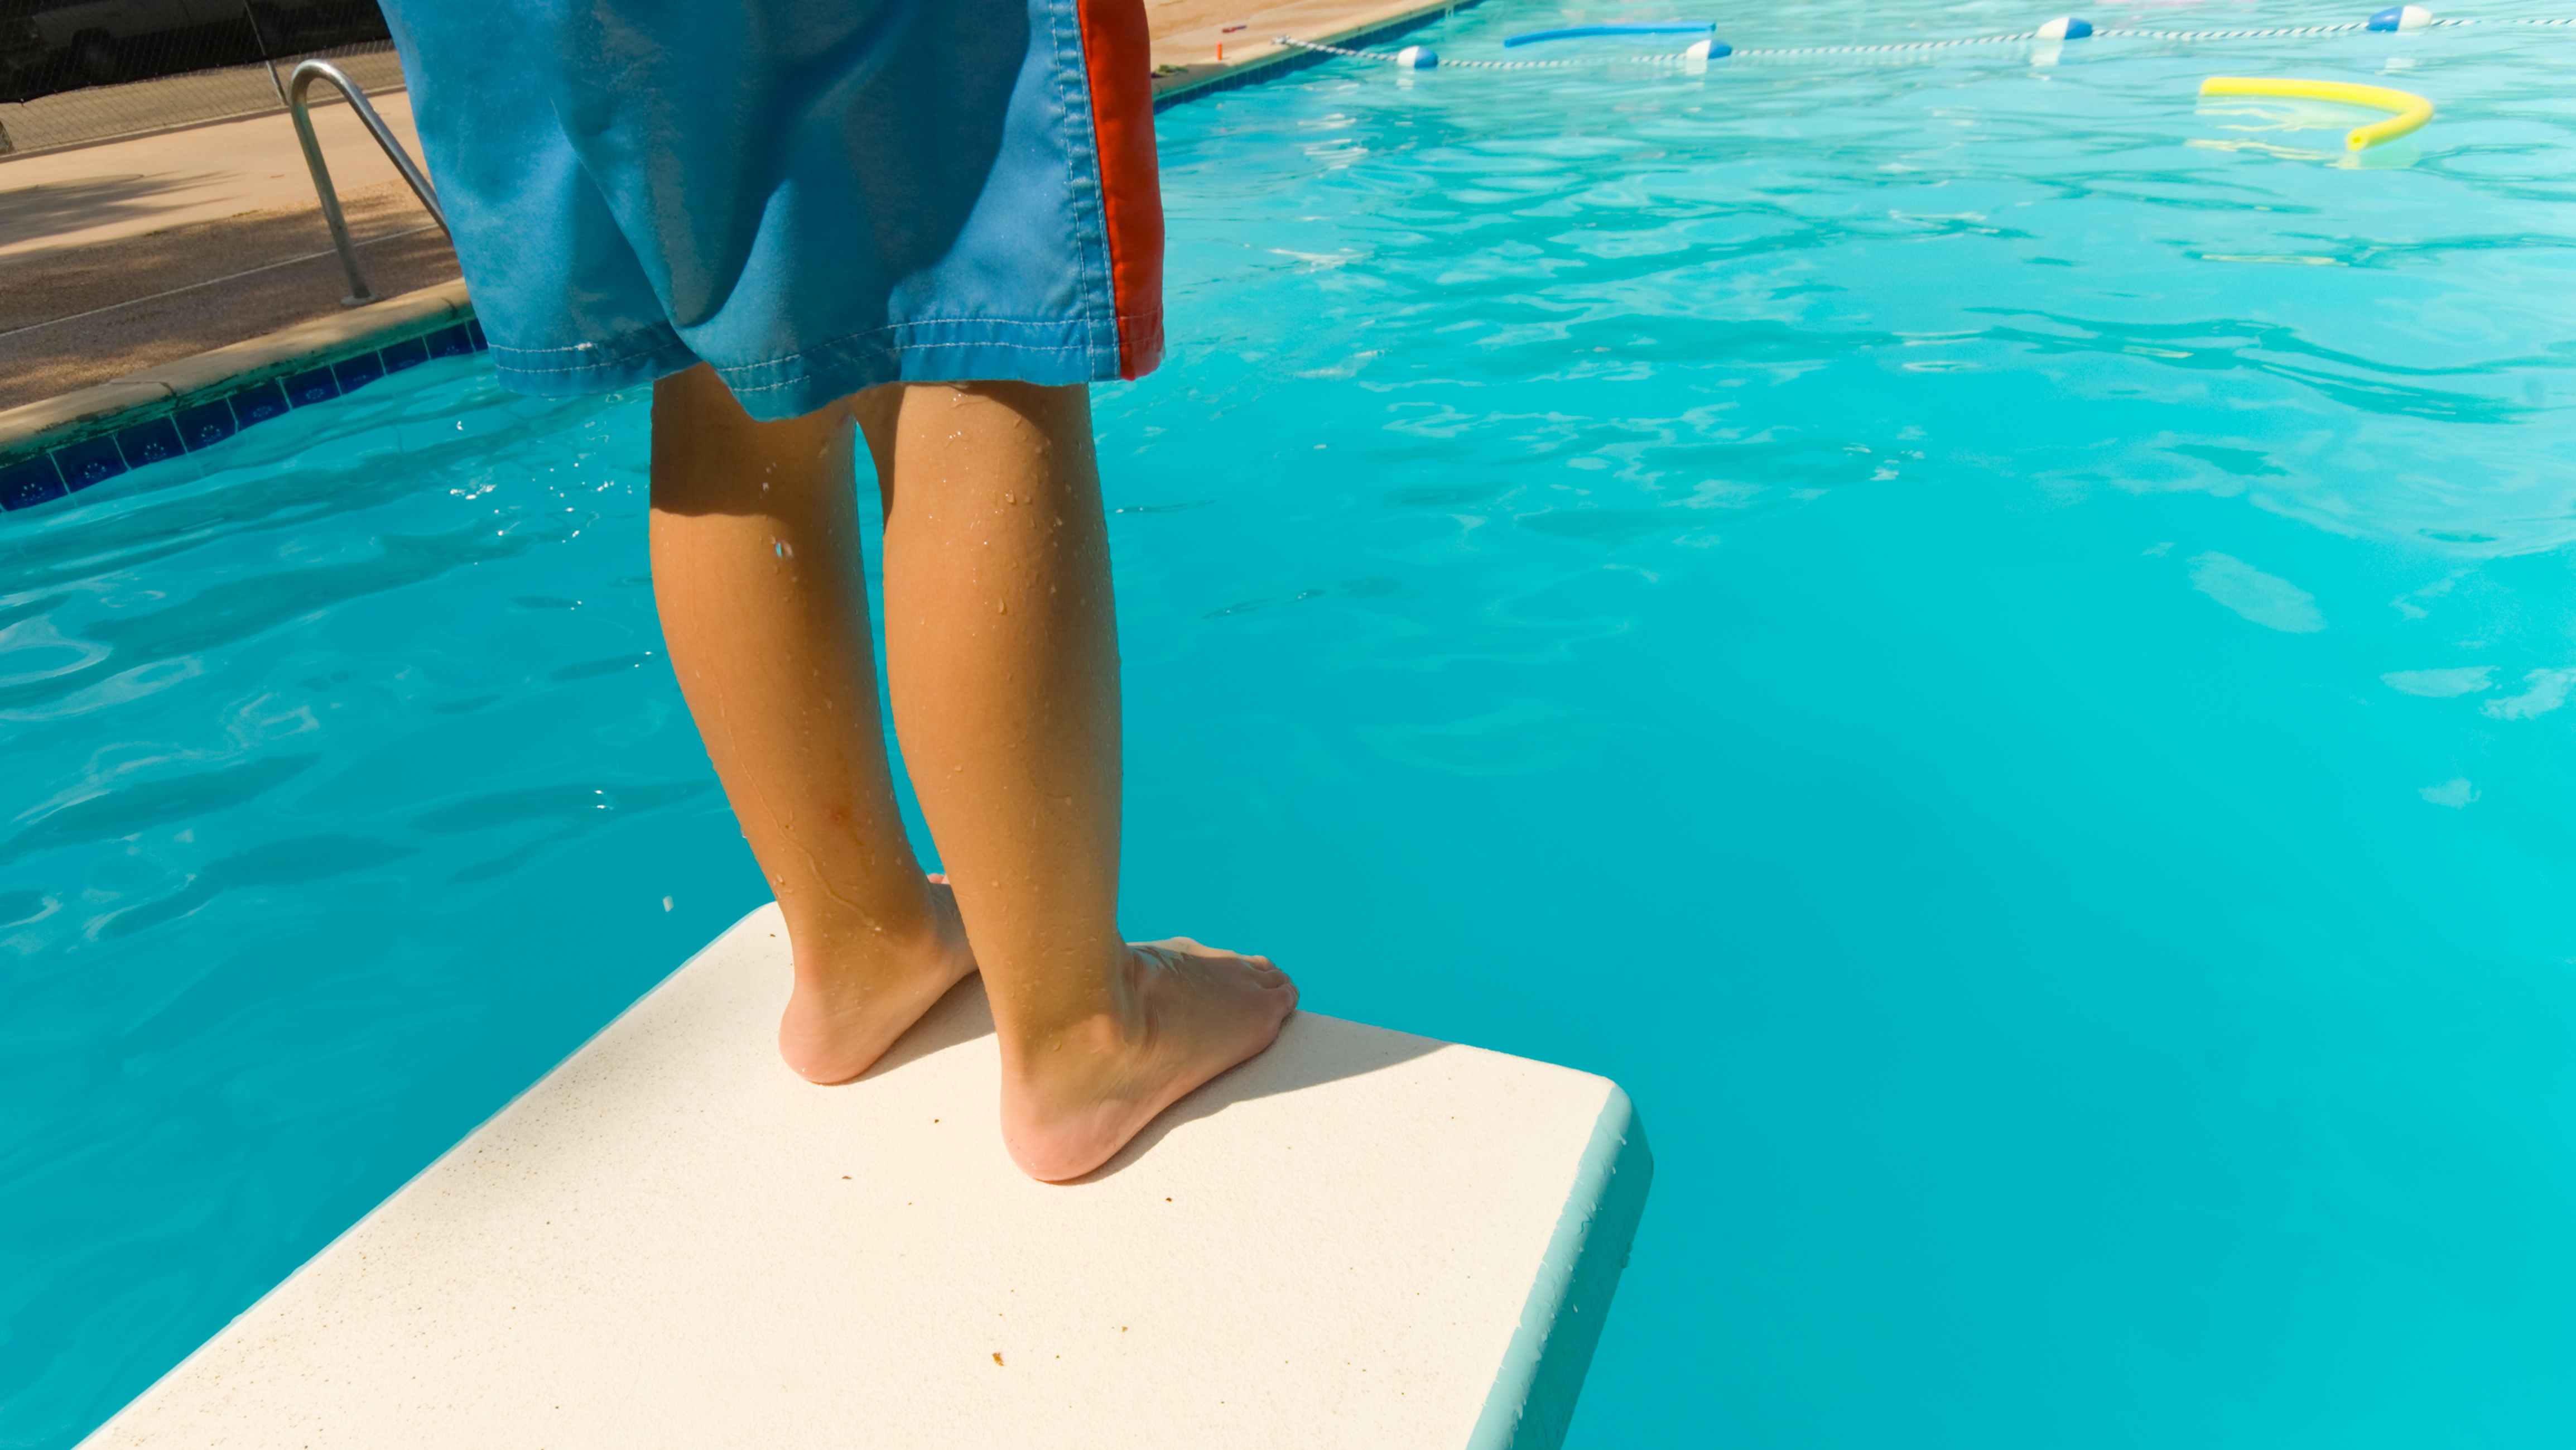 Diving Boards Are Making A Comeback. Here's How To Choose The Right One.